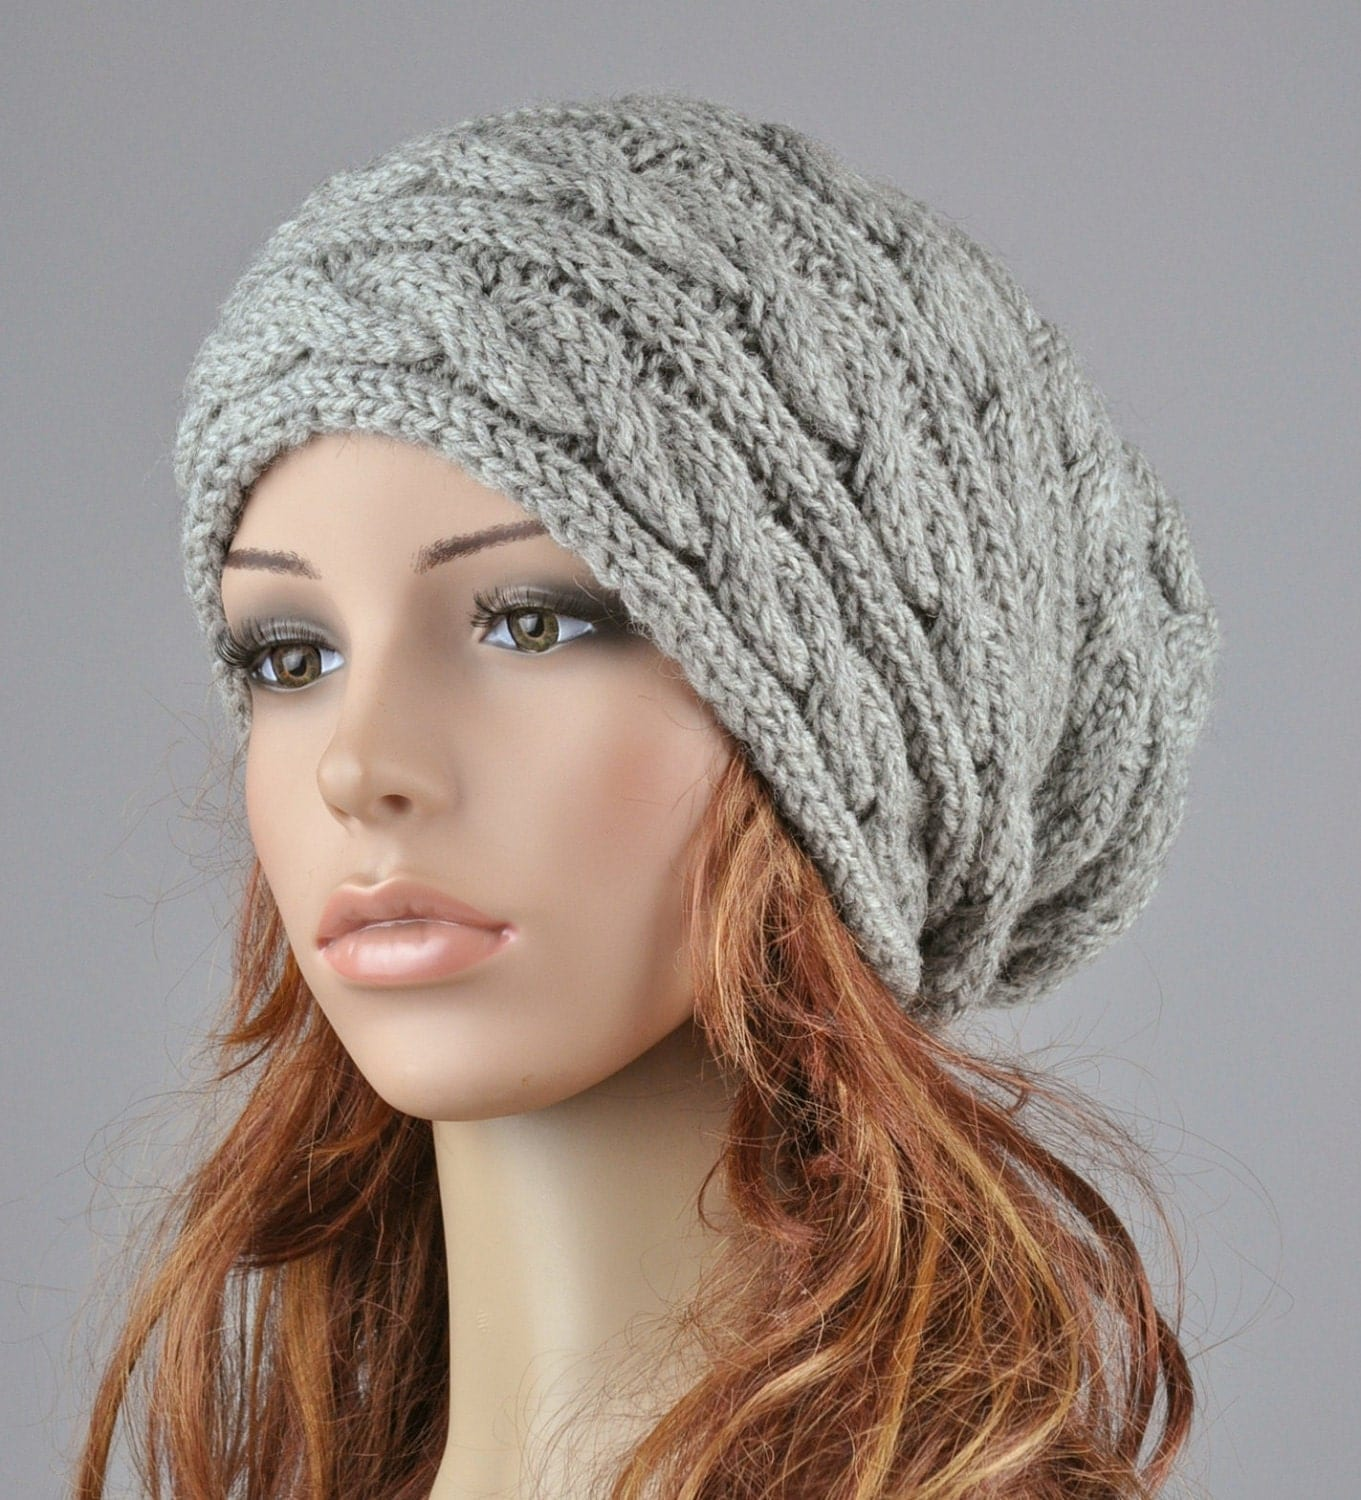 Free Knit Pattern For Boot Toppers : Hand knit hat Grey hat slouchy hat cable pattern hat